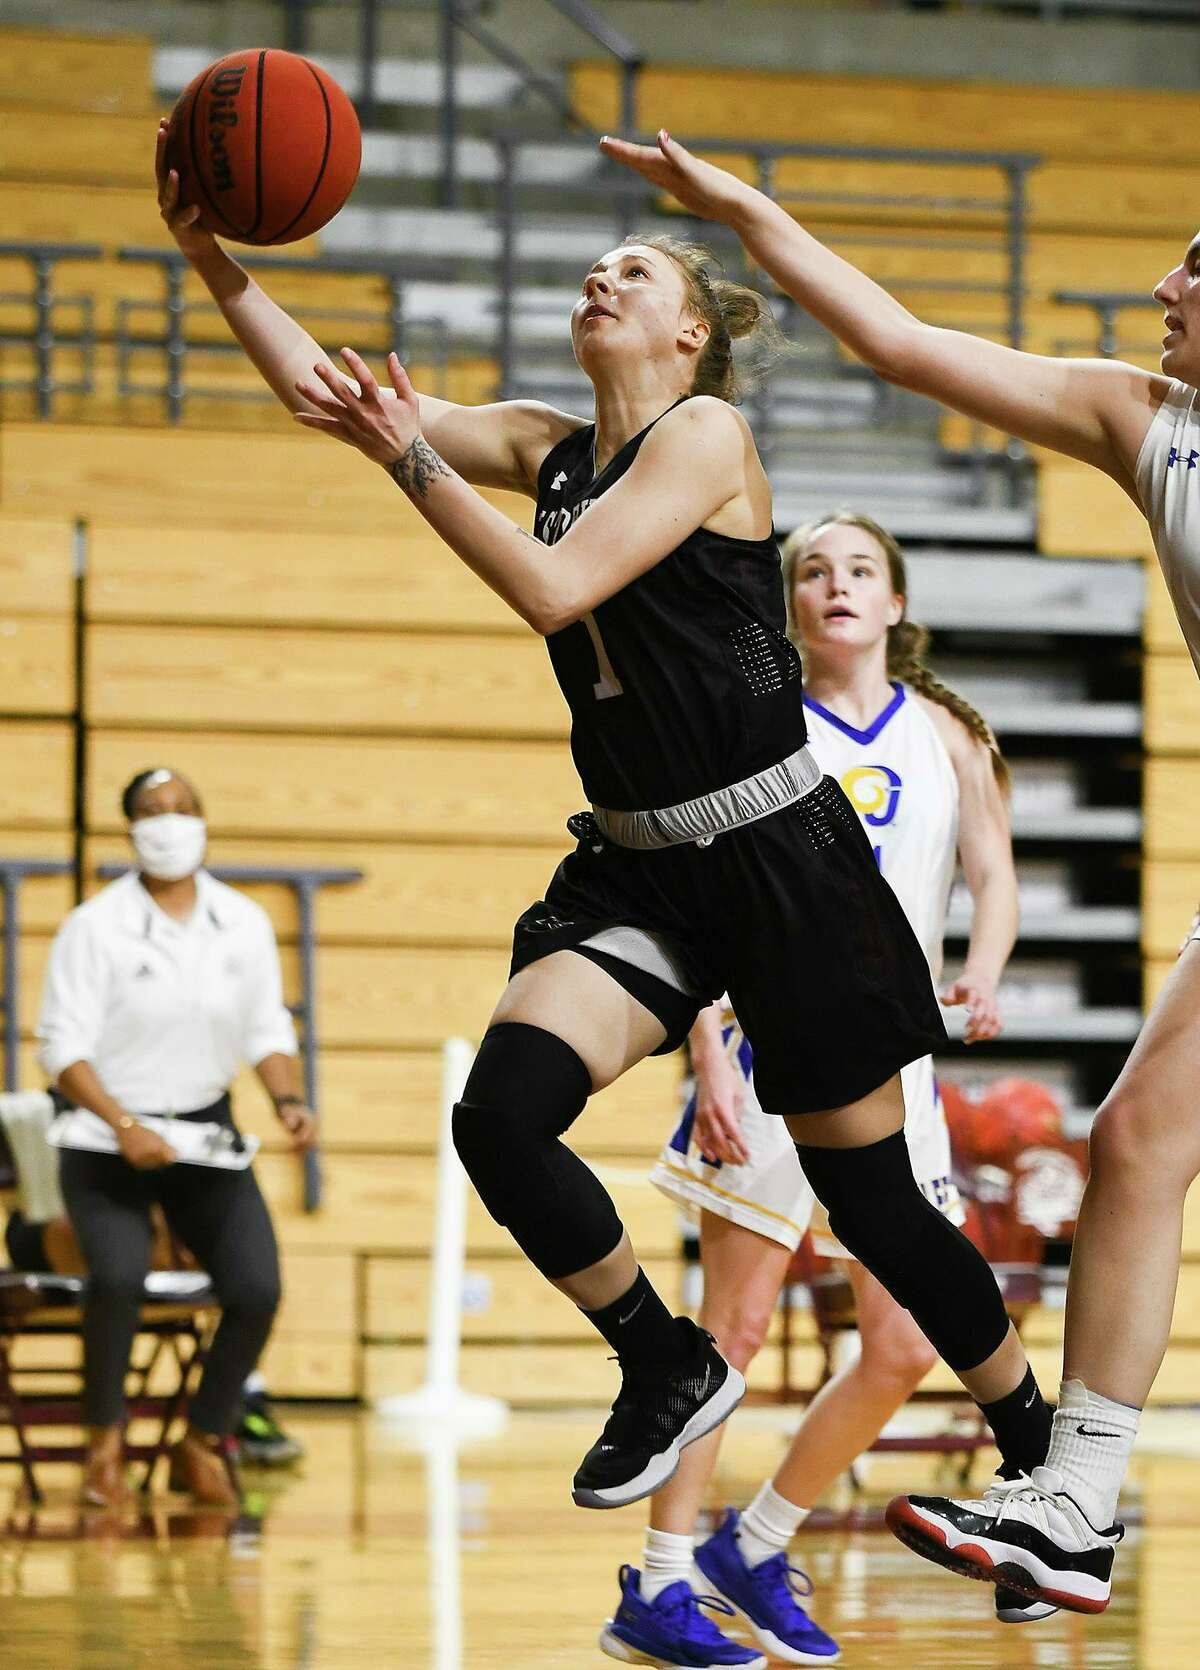 Patrycja Jaworska scored 12 points as Texas A&M International beat Angelo State on Friday.